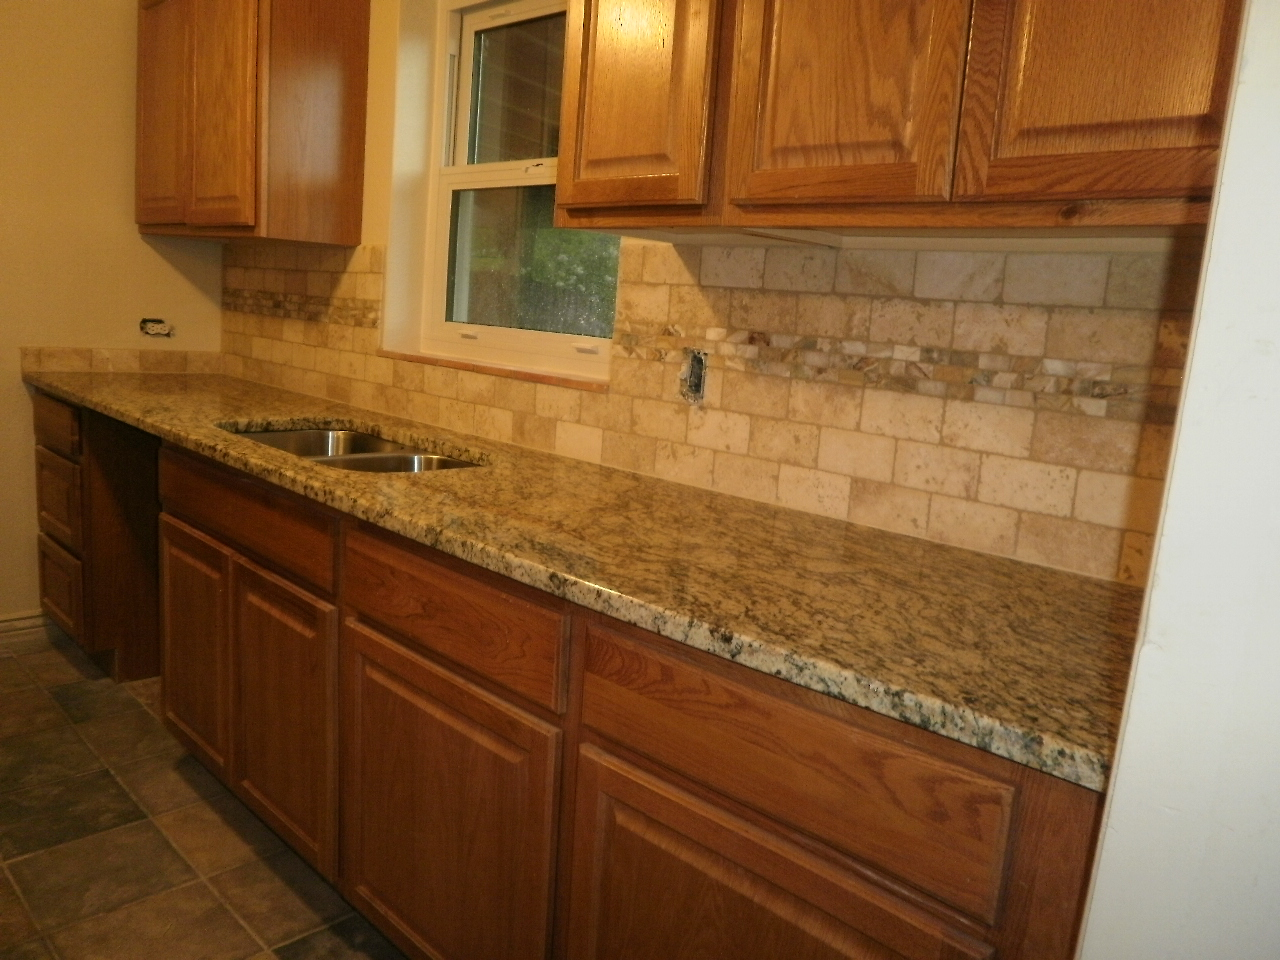 Santa cecilia granite backsplash ideas Backslash ideas